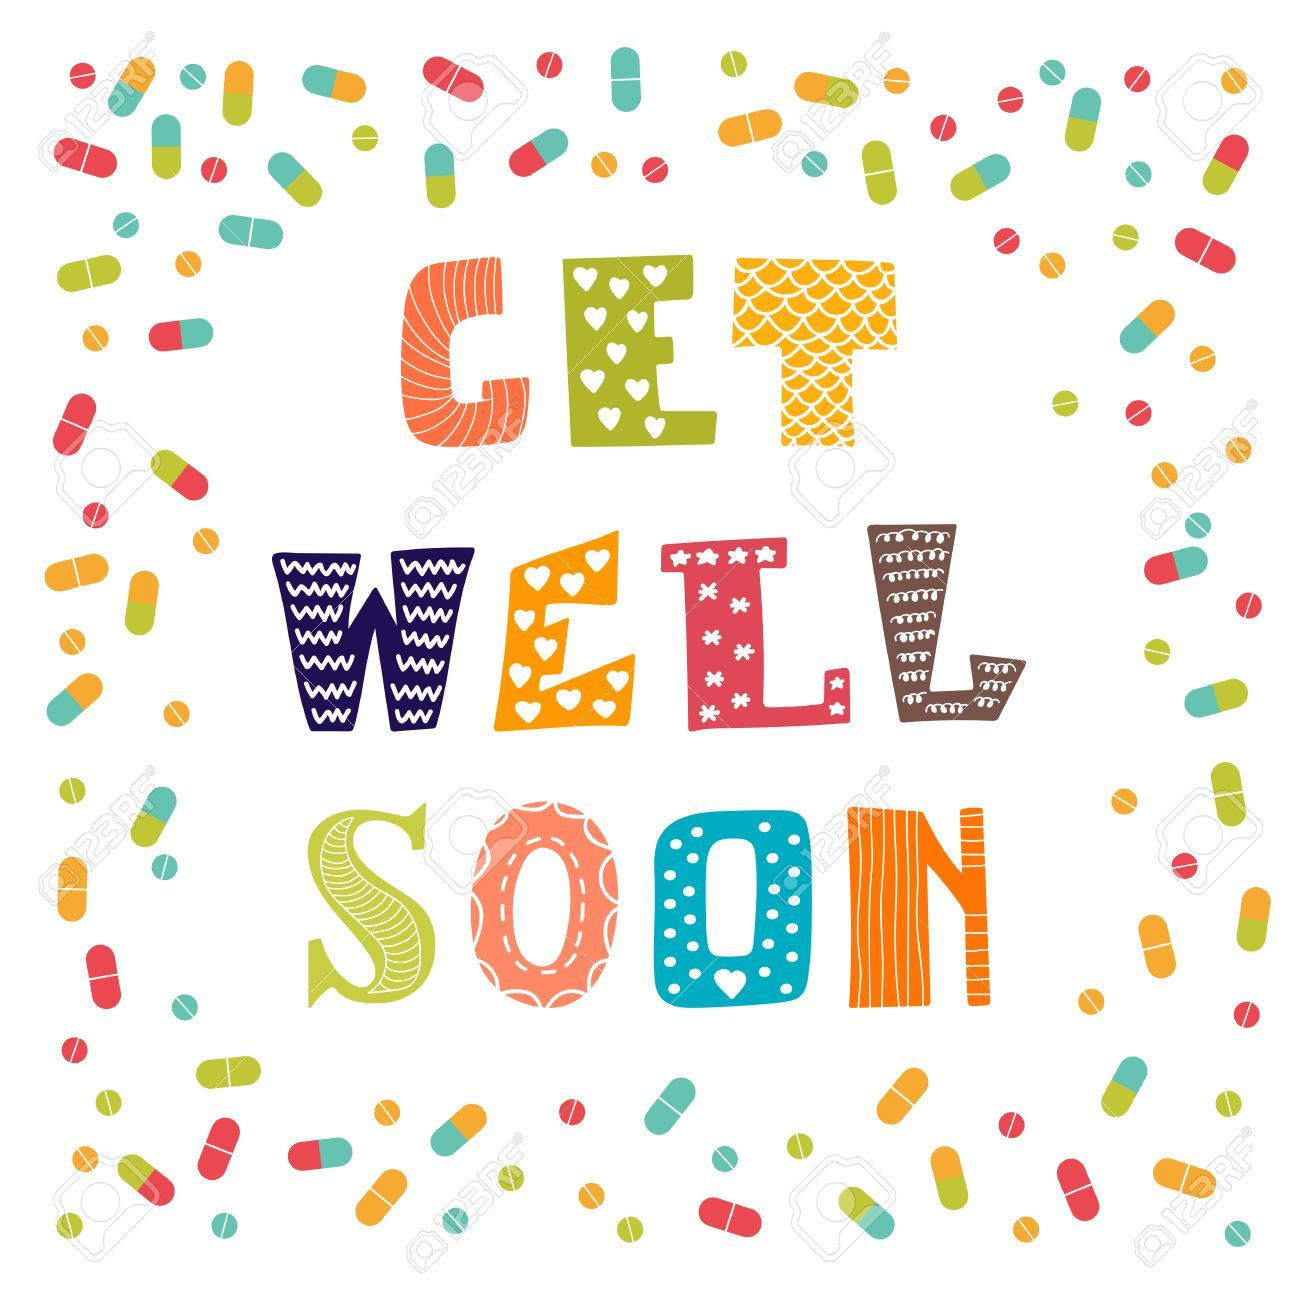 Get well soon get well soon ecards pinterest ecards free get well soon greeting cards kristyandbryce Images